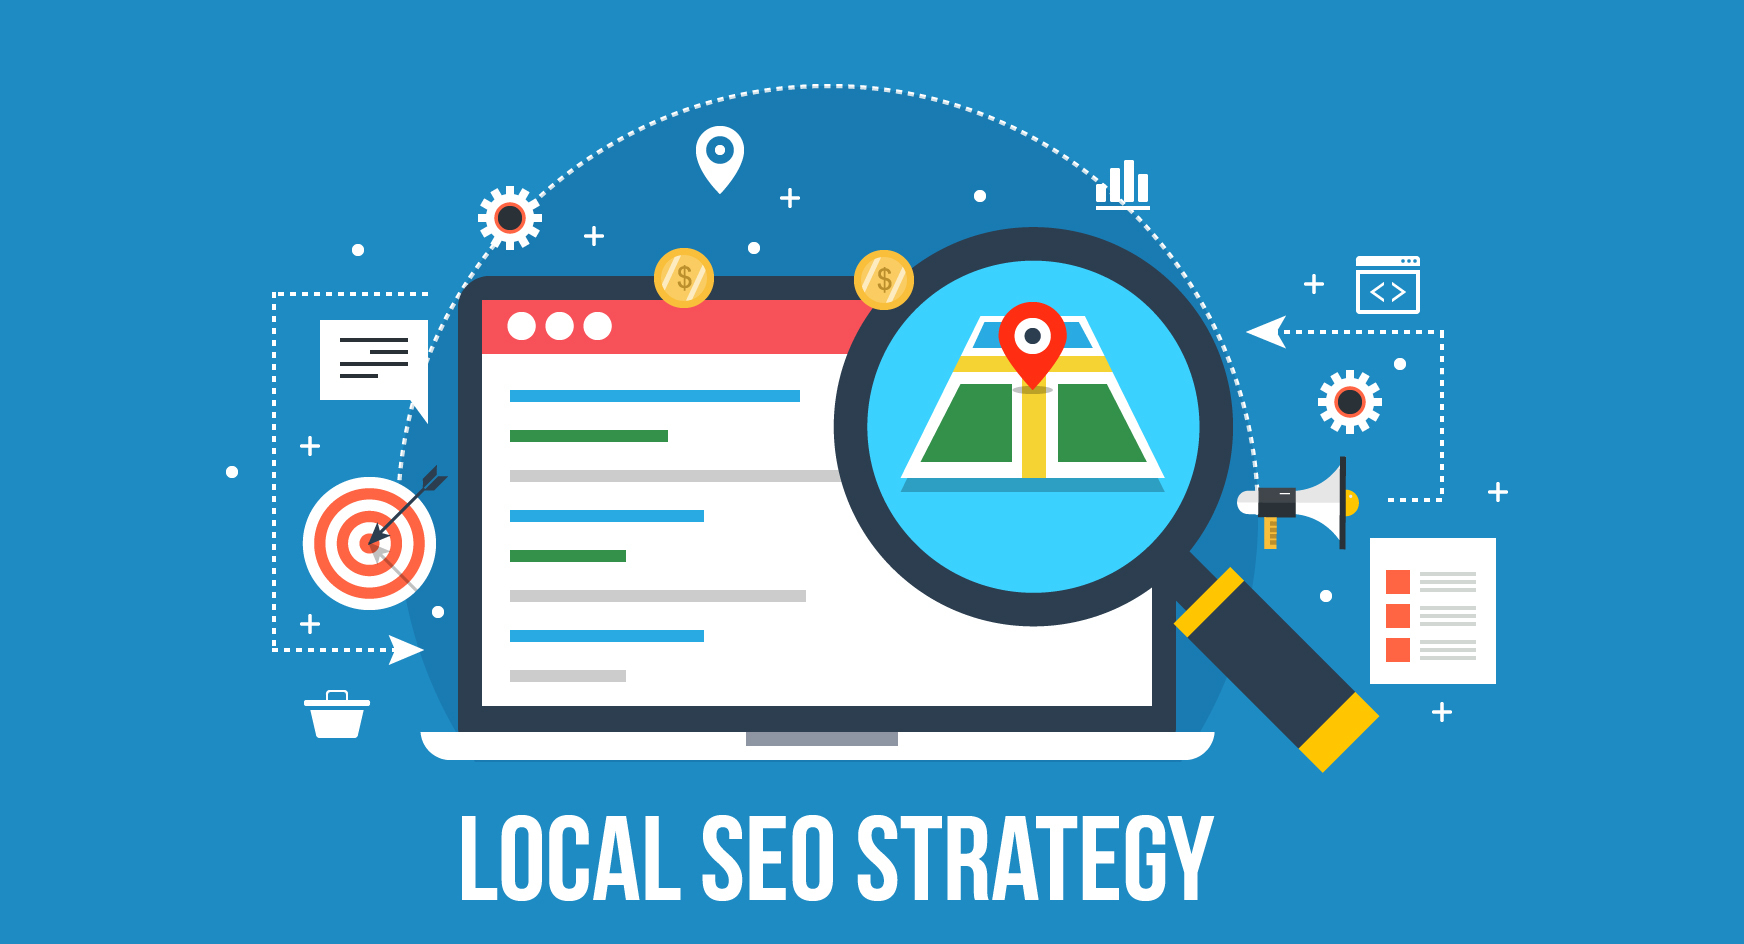 Making Google work for your SEO benefit